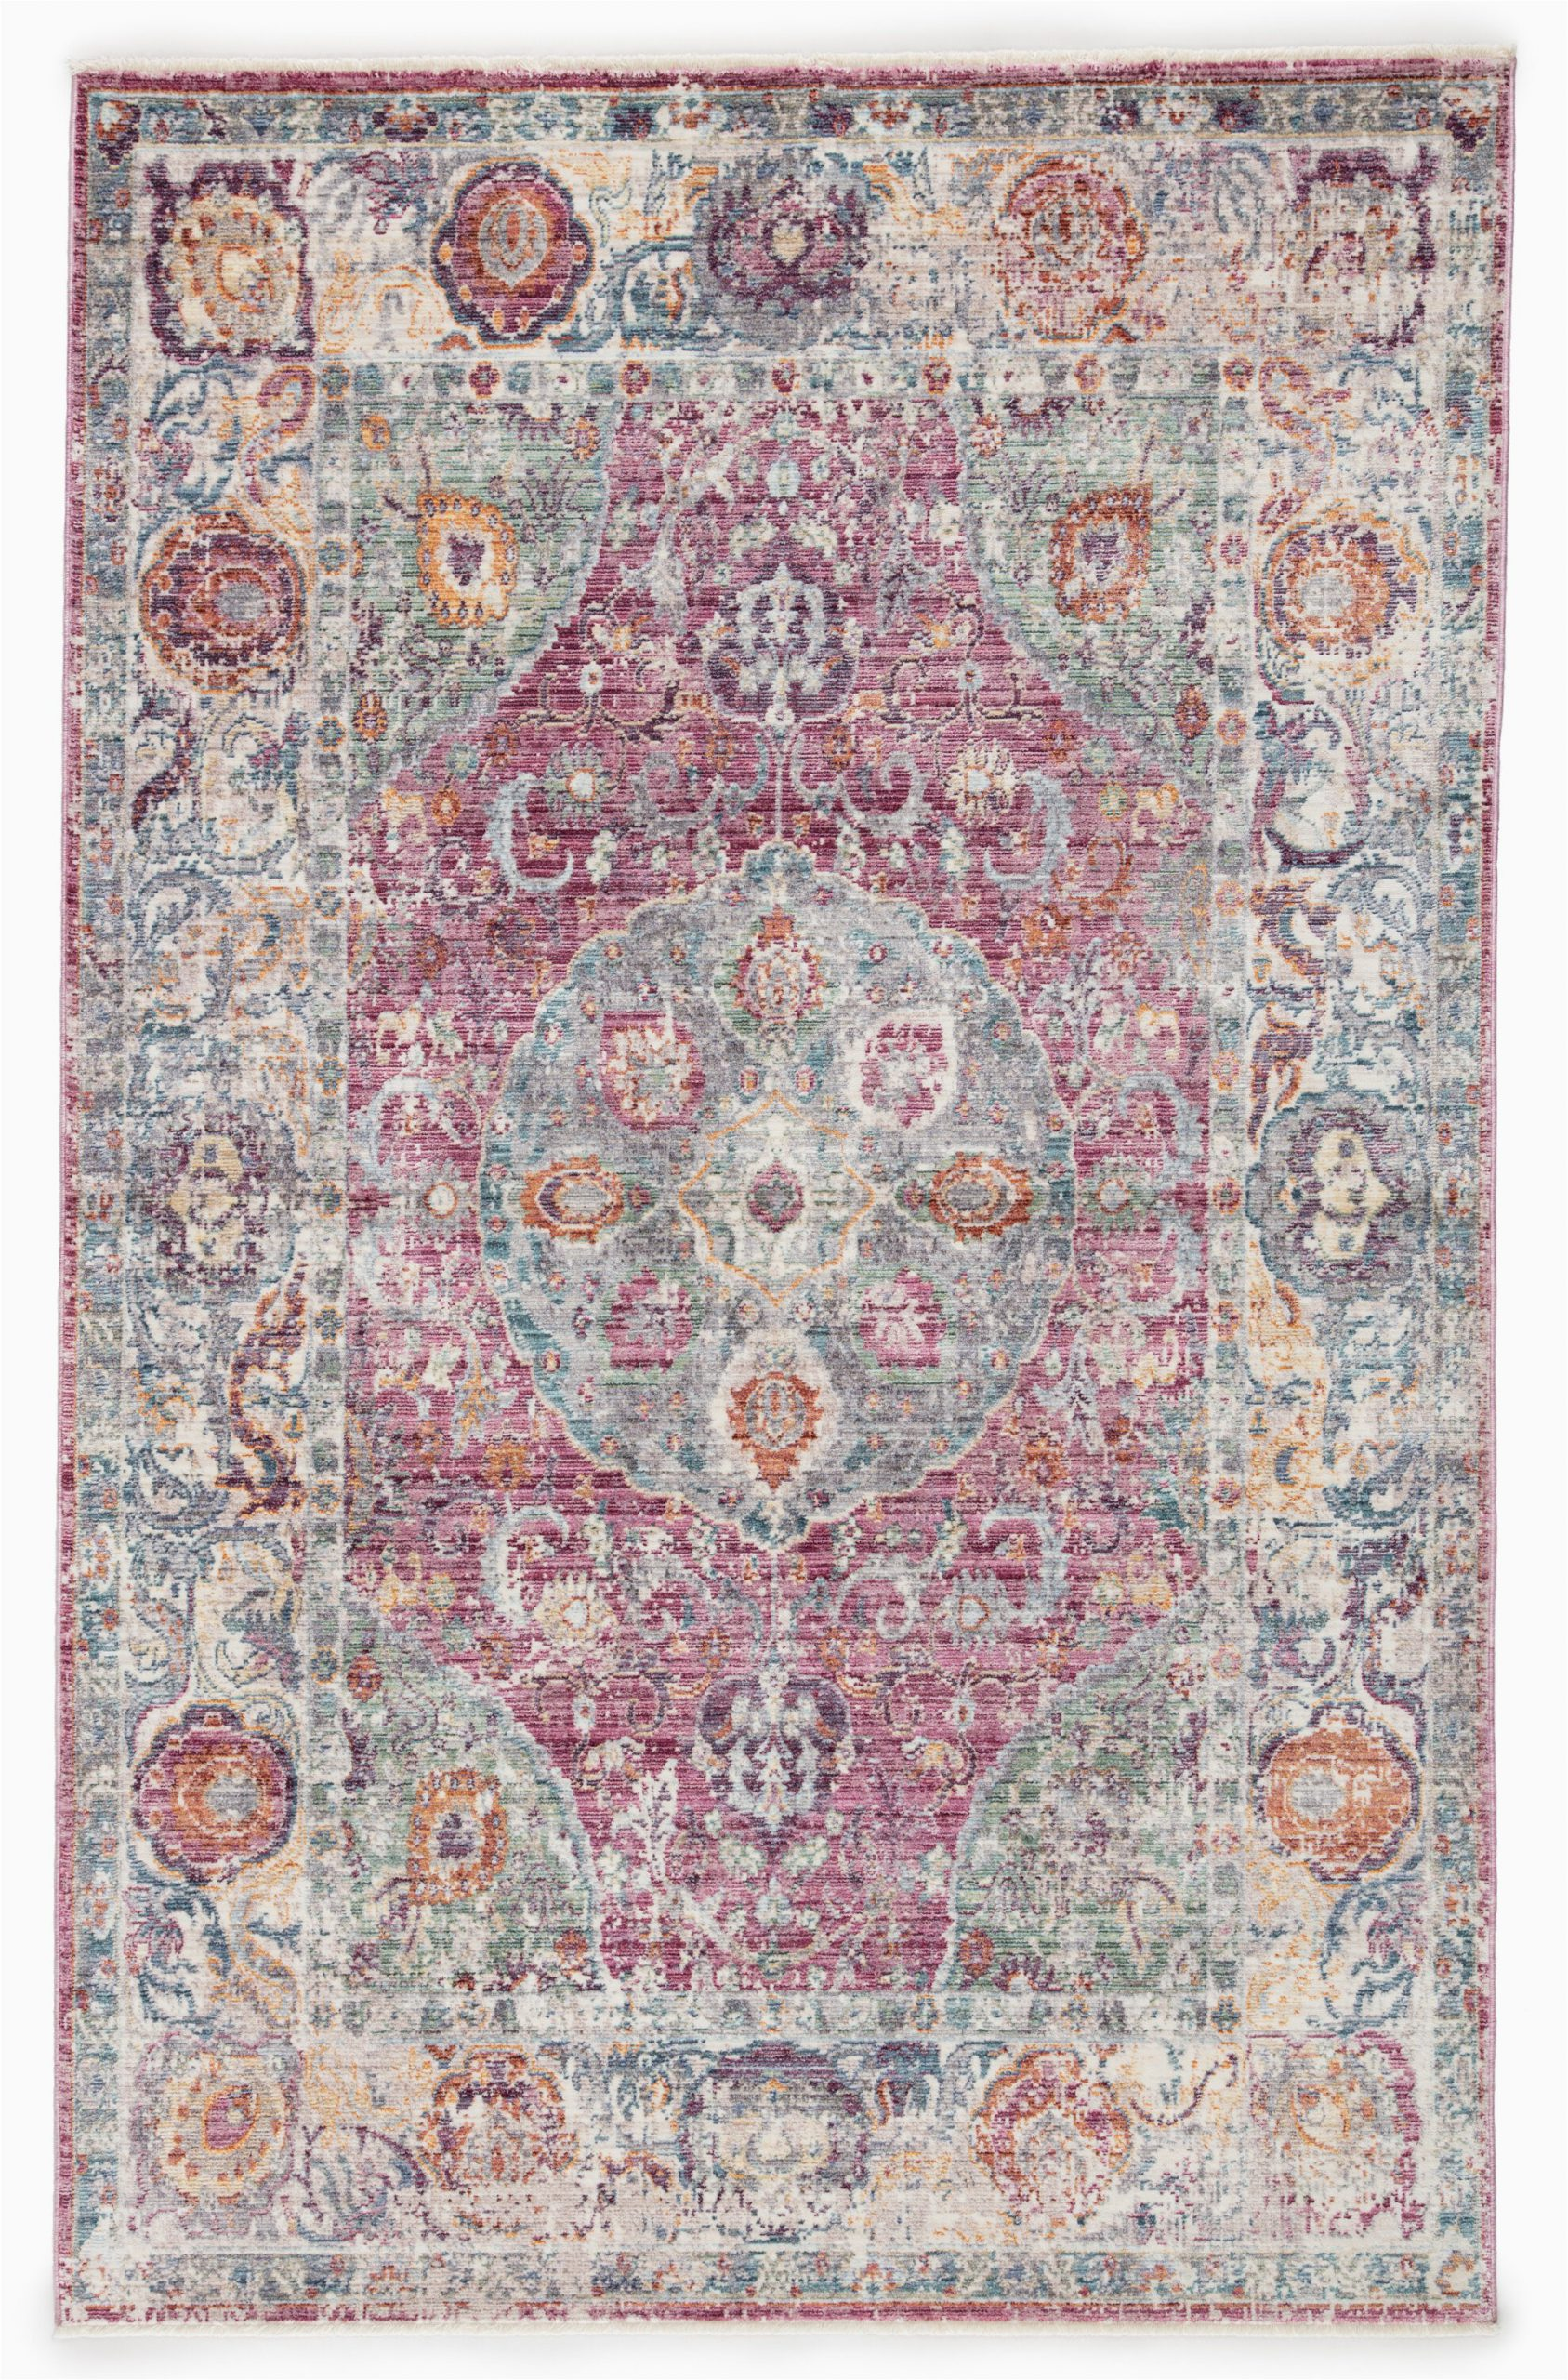 patchen lily whitedesert rose area rug